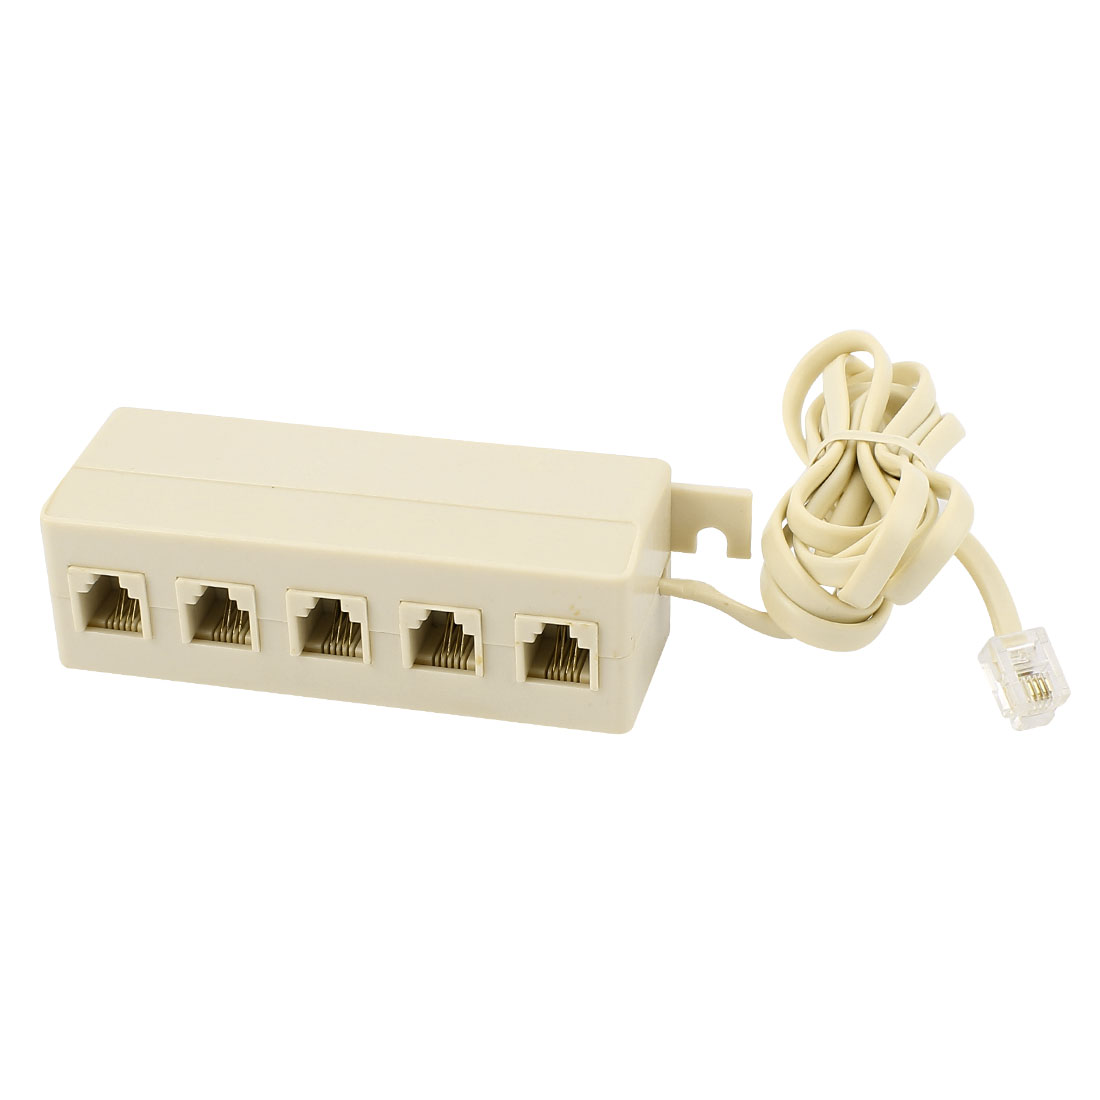 5 Way Outlet 6P4C RJ11 Telephone Phone Modular Jack Line Splitter Adapter Beige